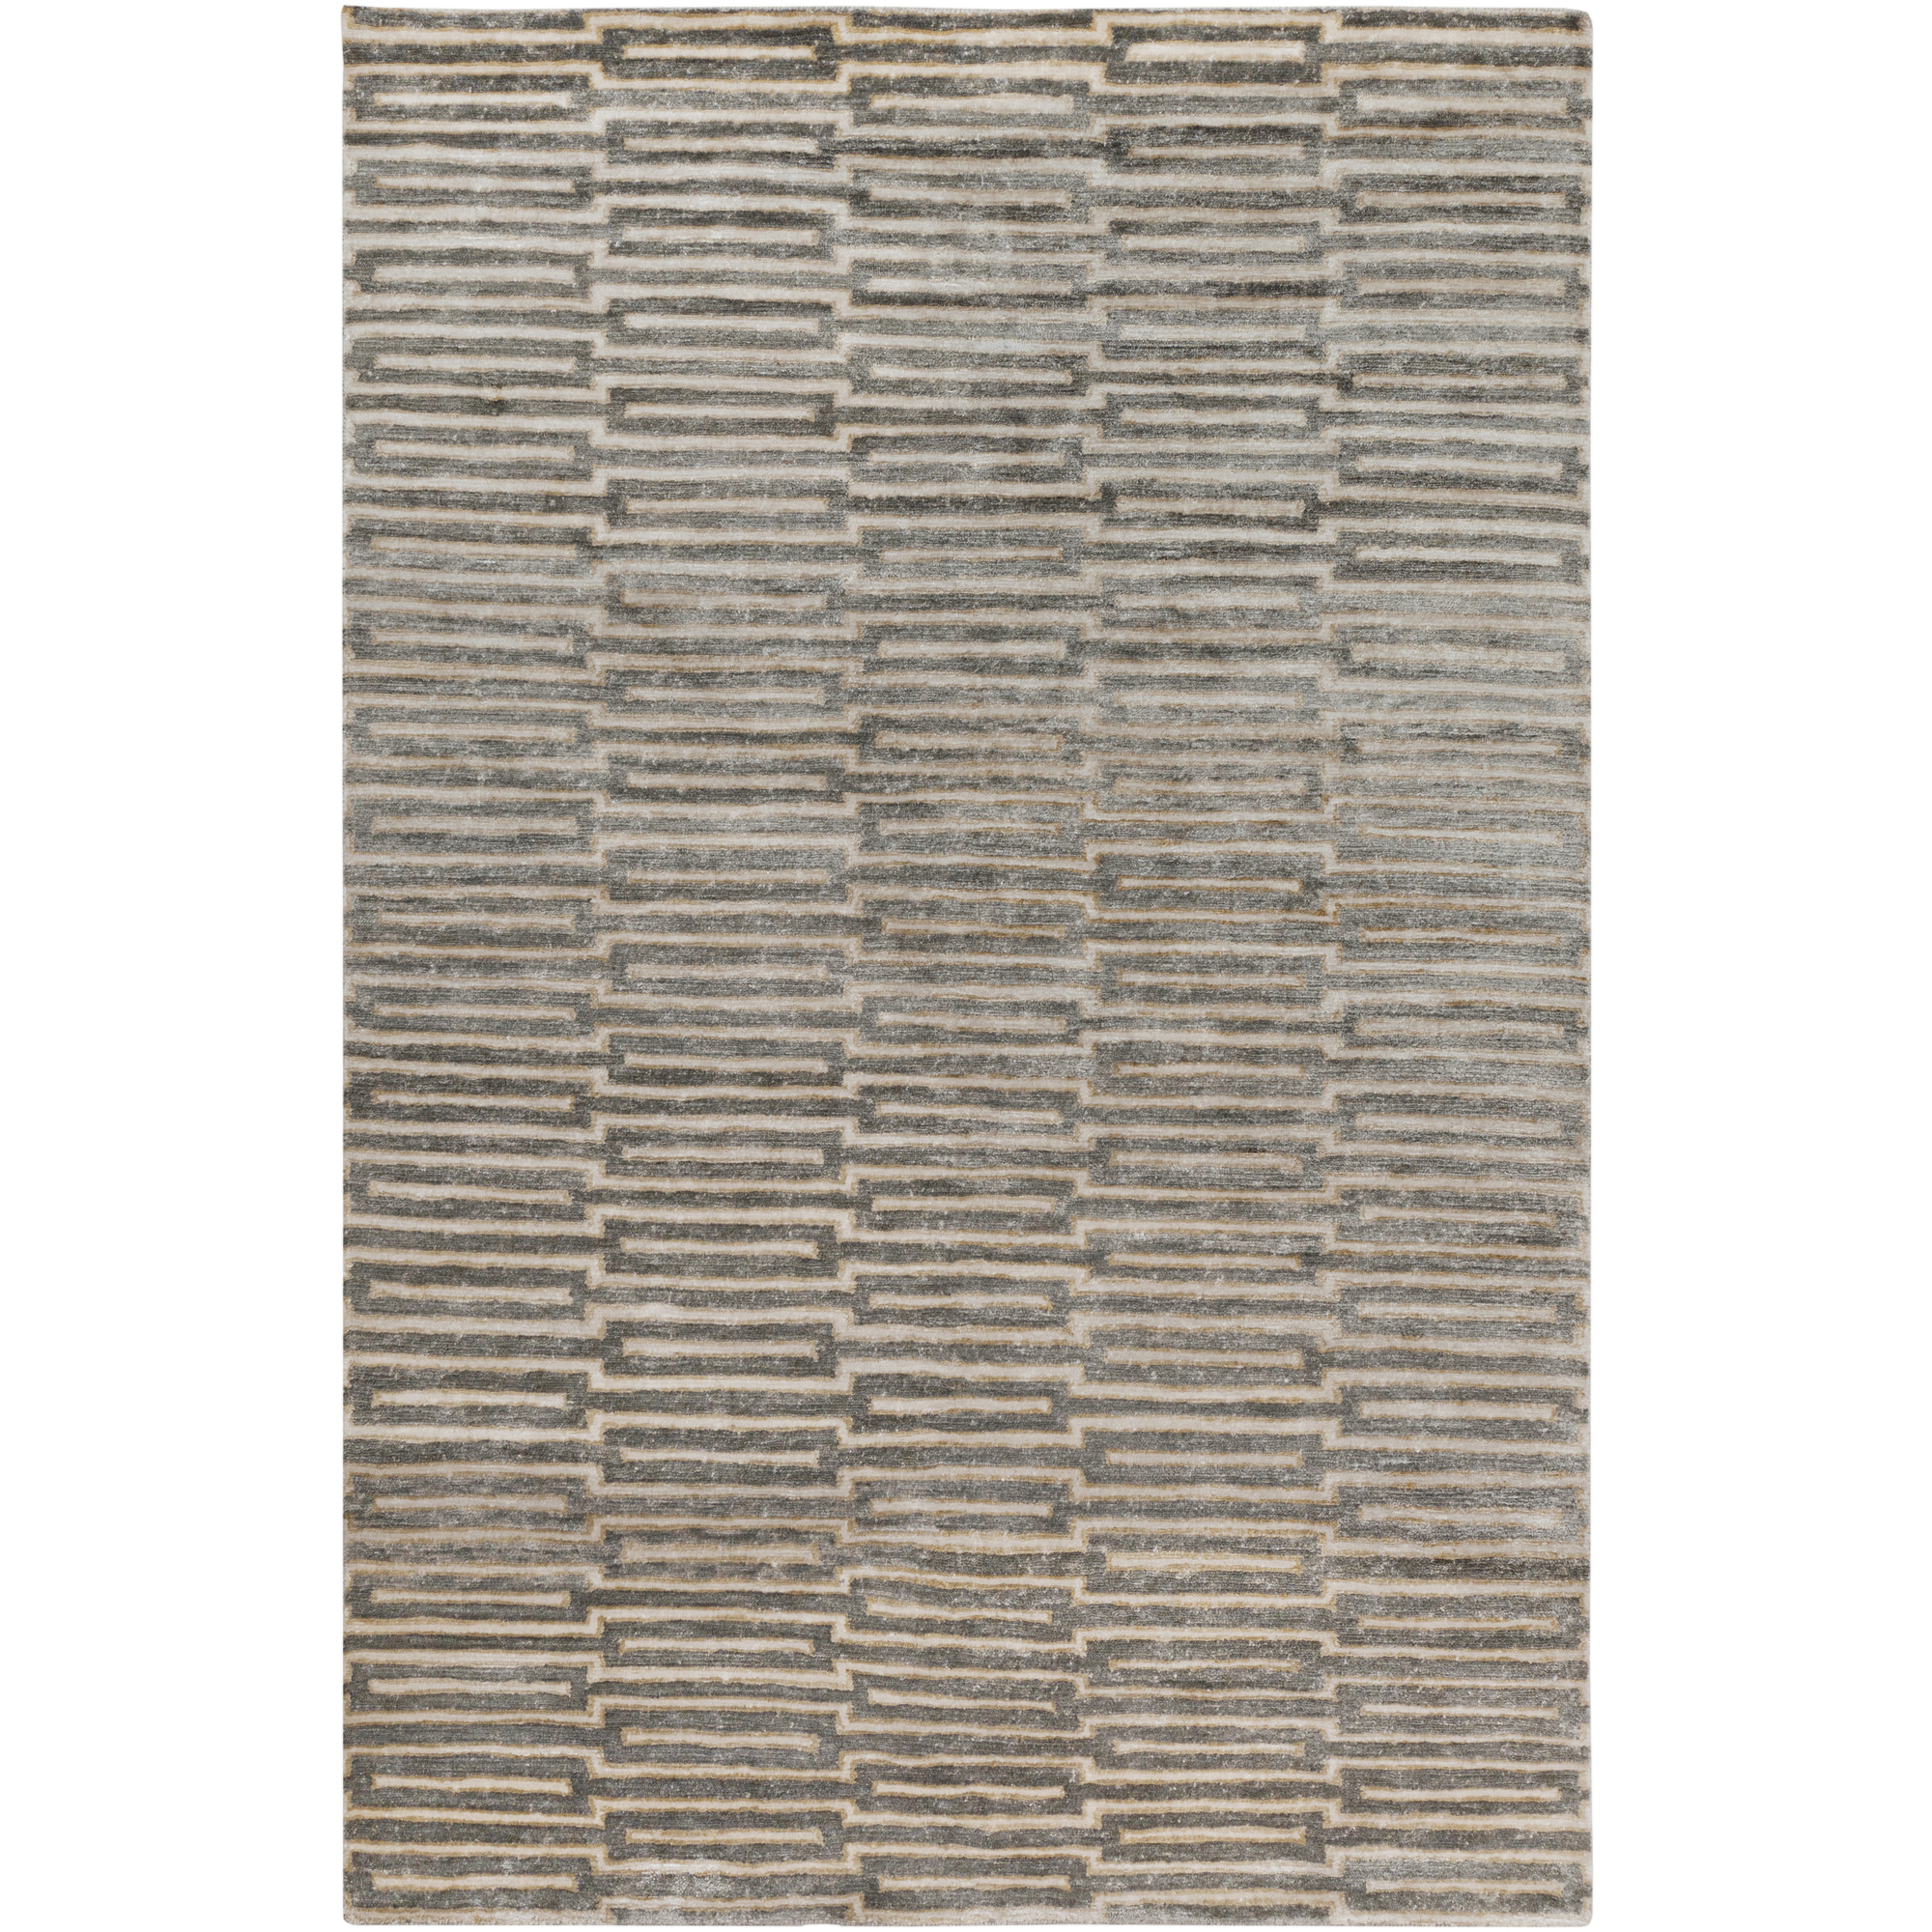 Art Of Knot Saveni 5u0027 X 8u0027 Rectangular Area Rug